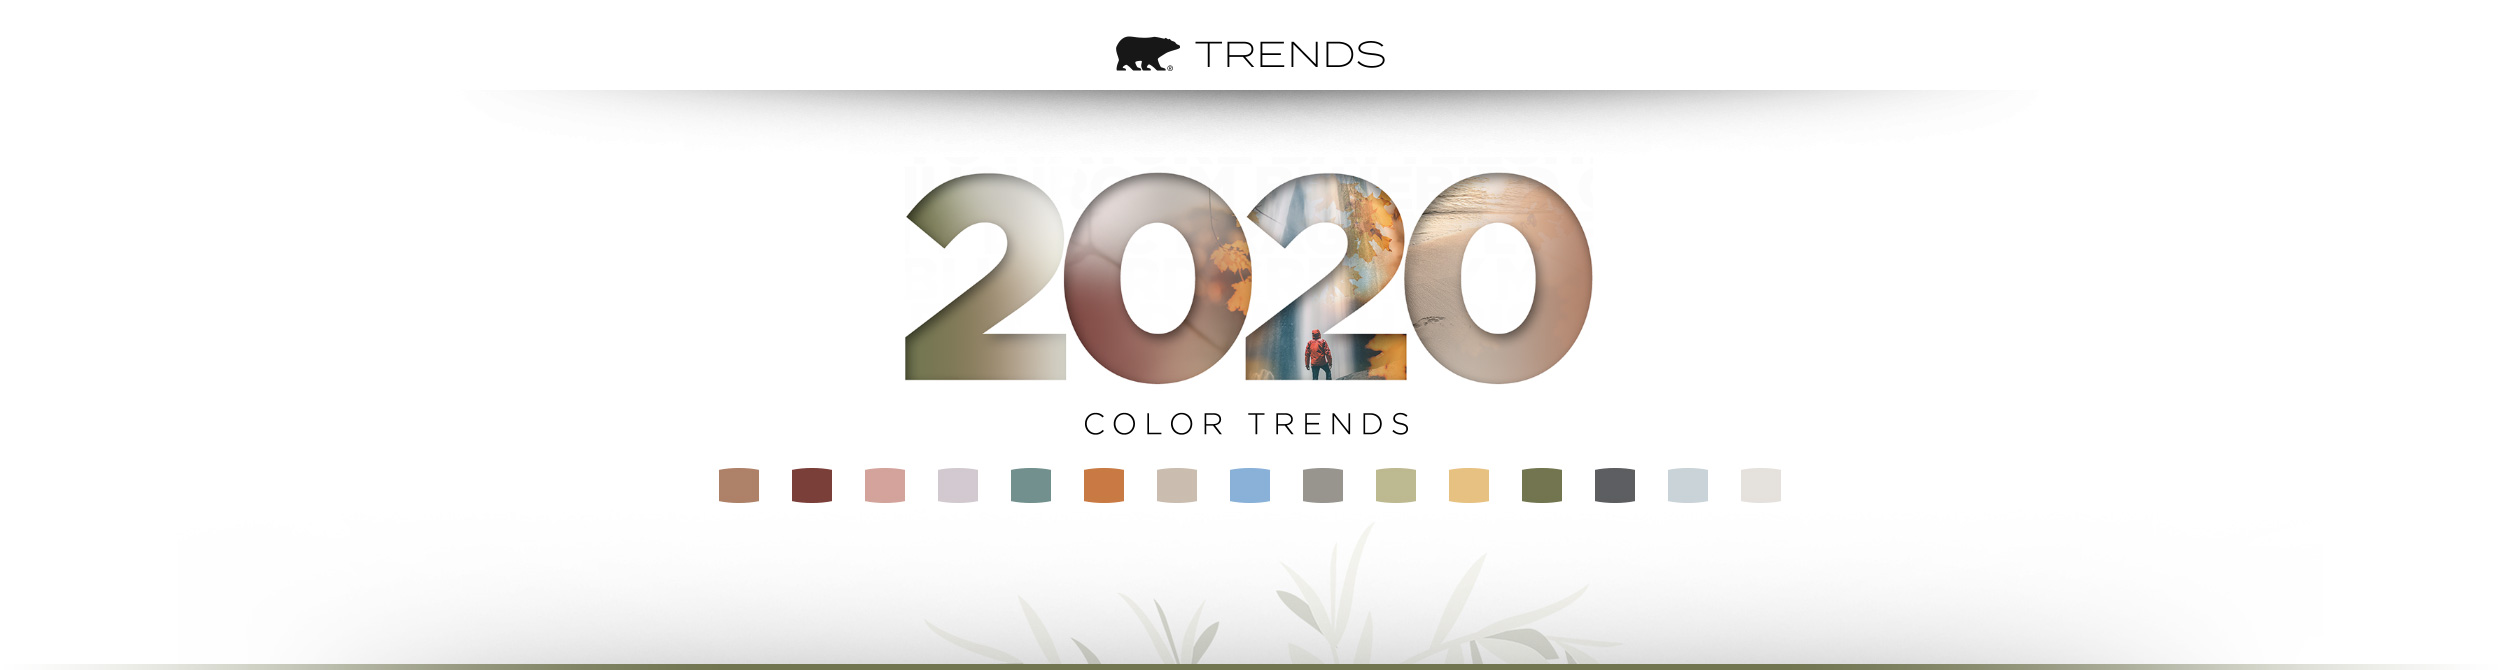 Banner image representing the Behr 2020 Color Trends forecast. Includes color chips of each of the 2020 trend colors, an artistic design of the phrase 2020 Color Trends, and the Behr logo